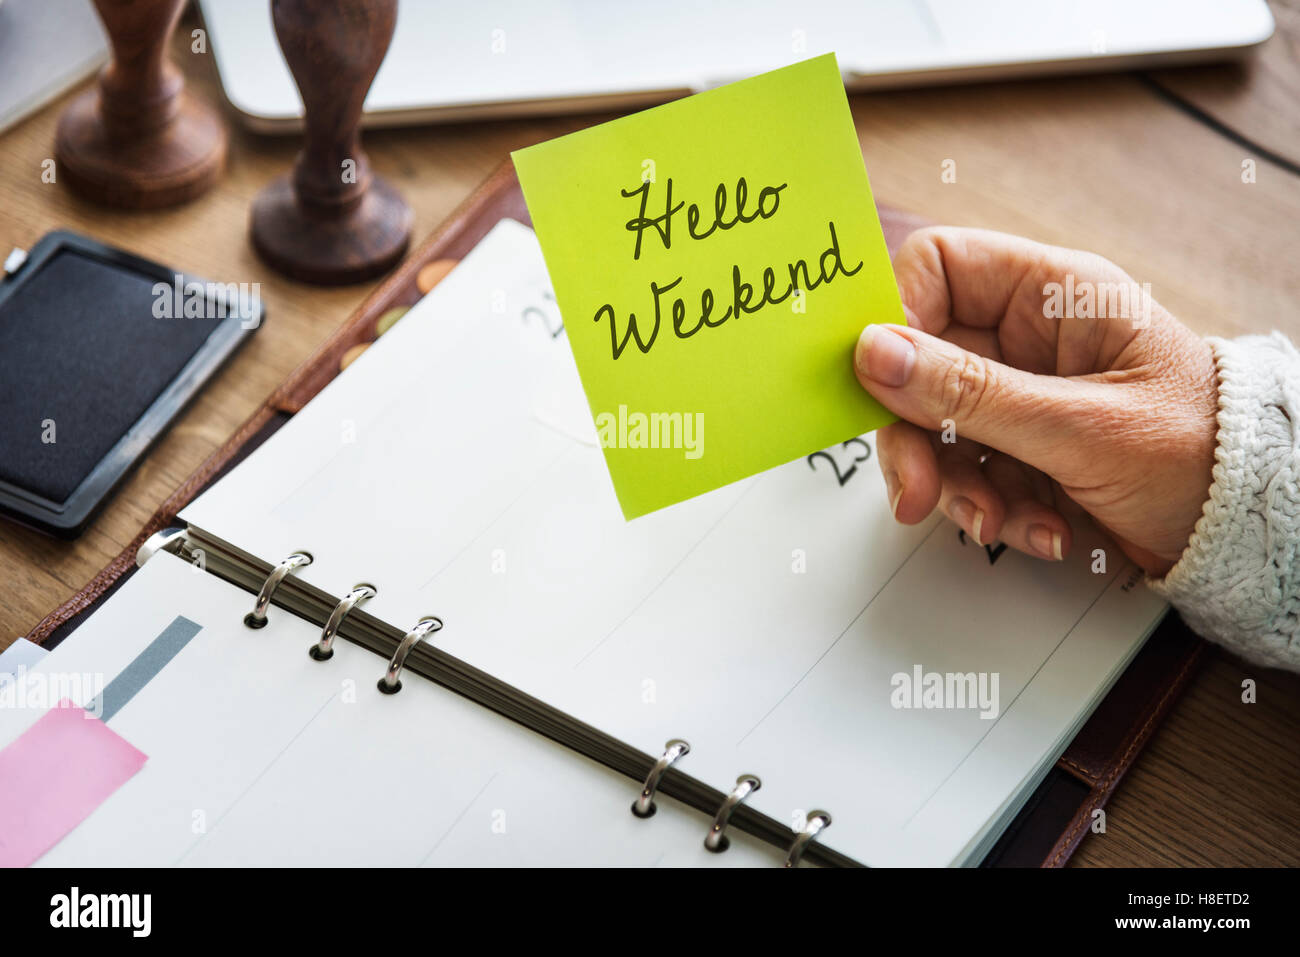 Hello Weekend Message Happiness Relaxtion Concept - Stock Image